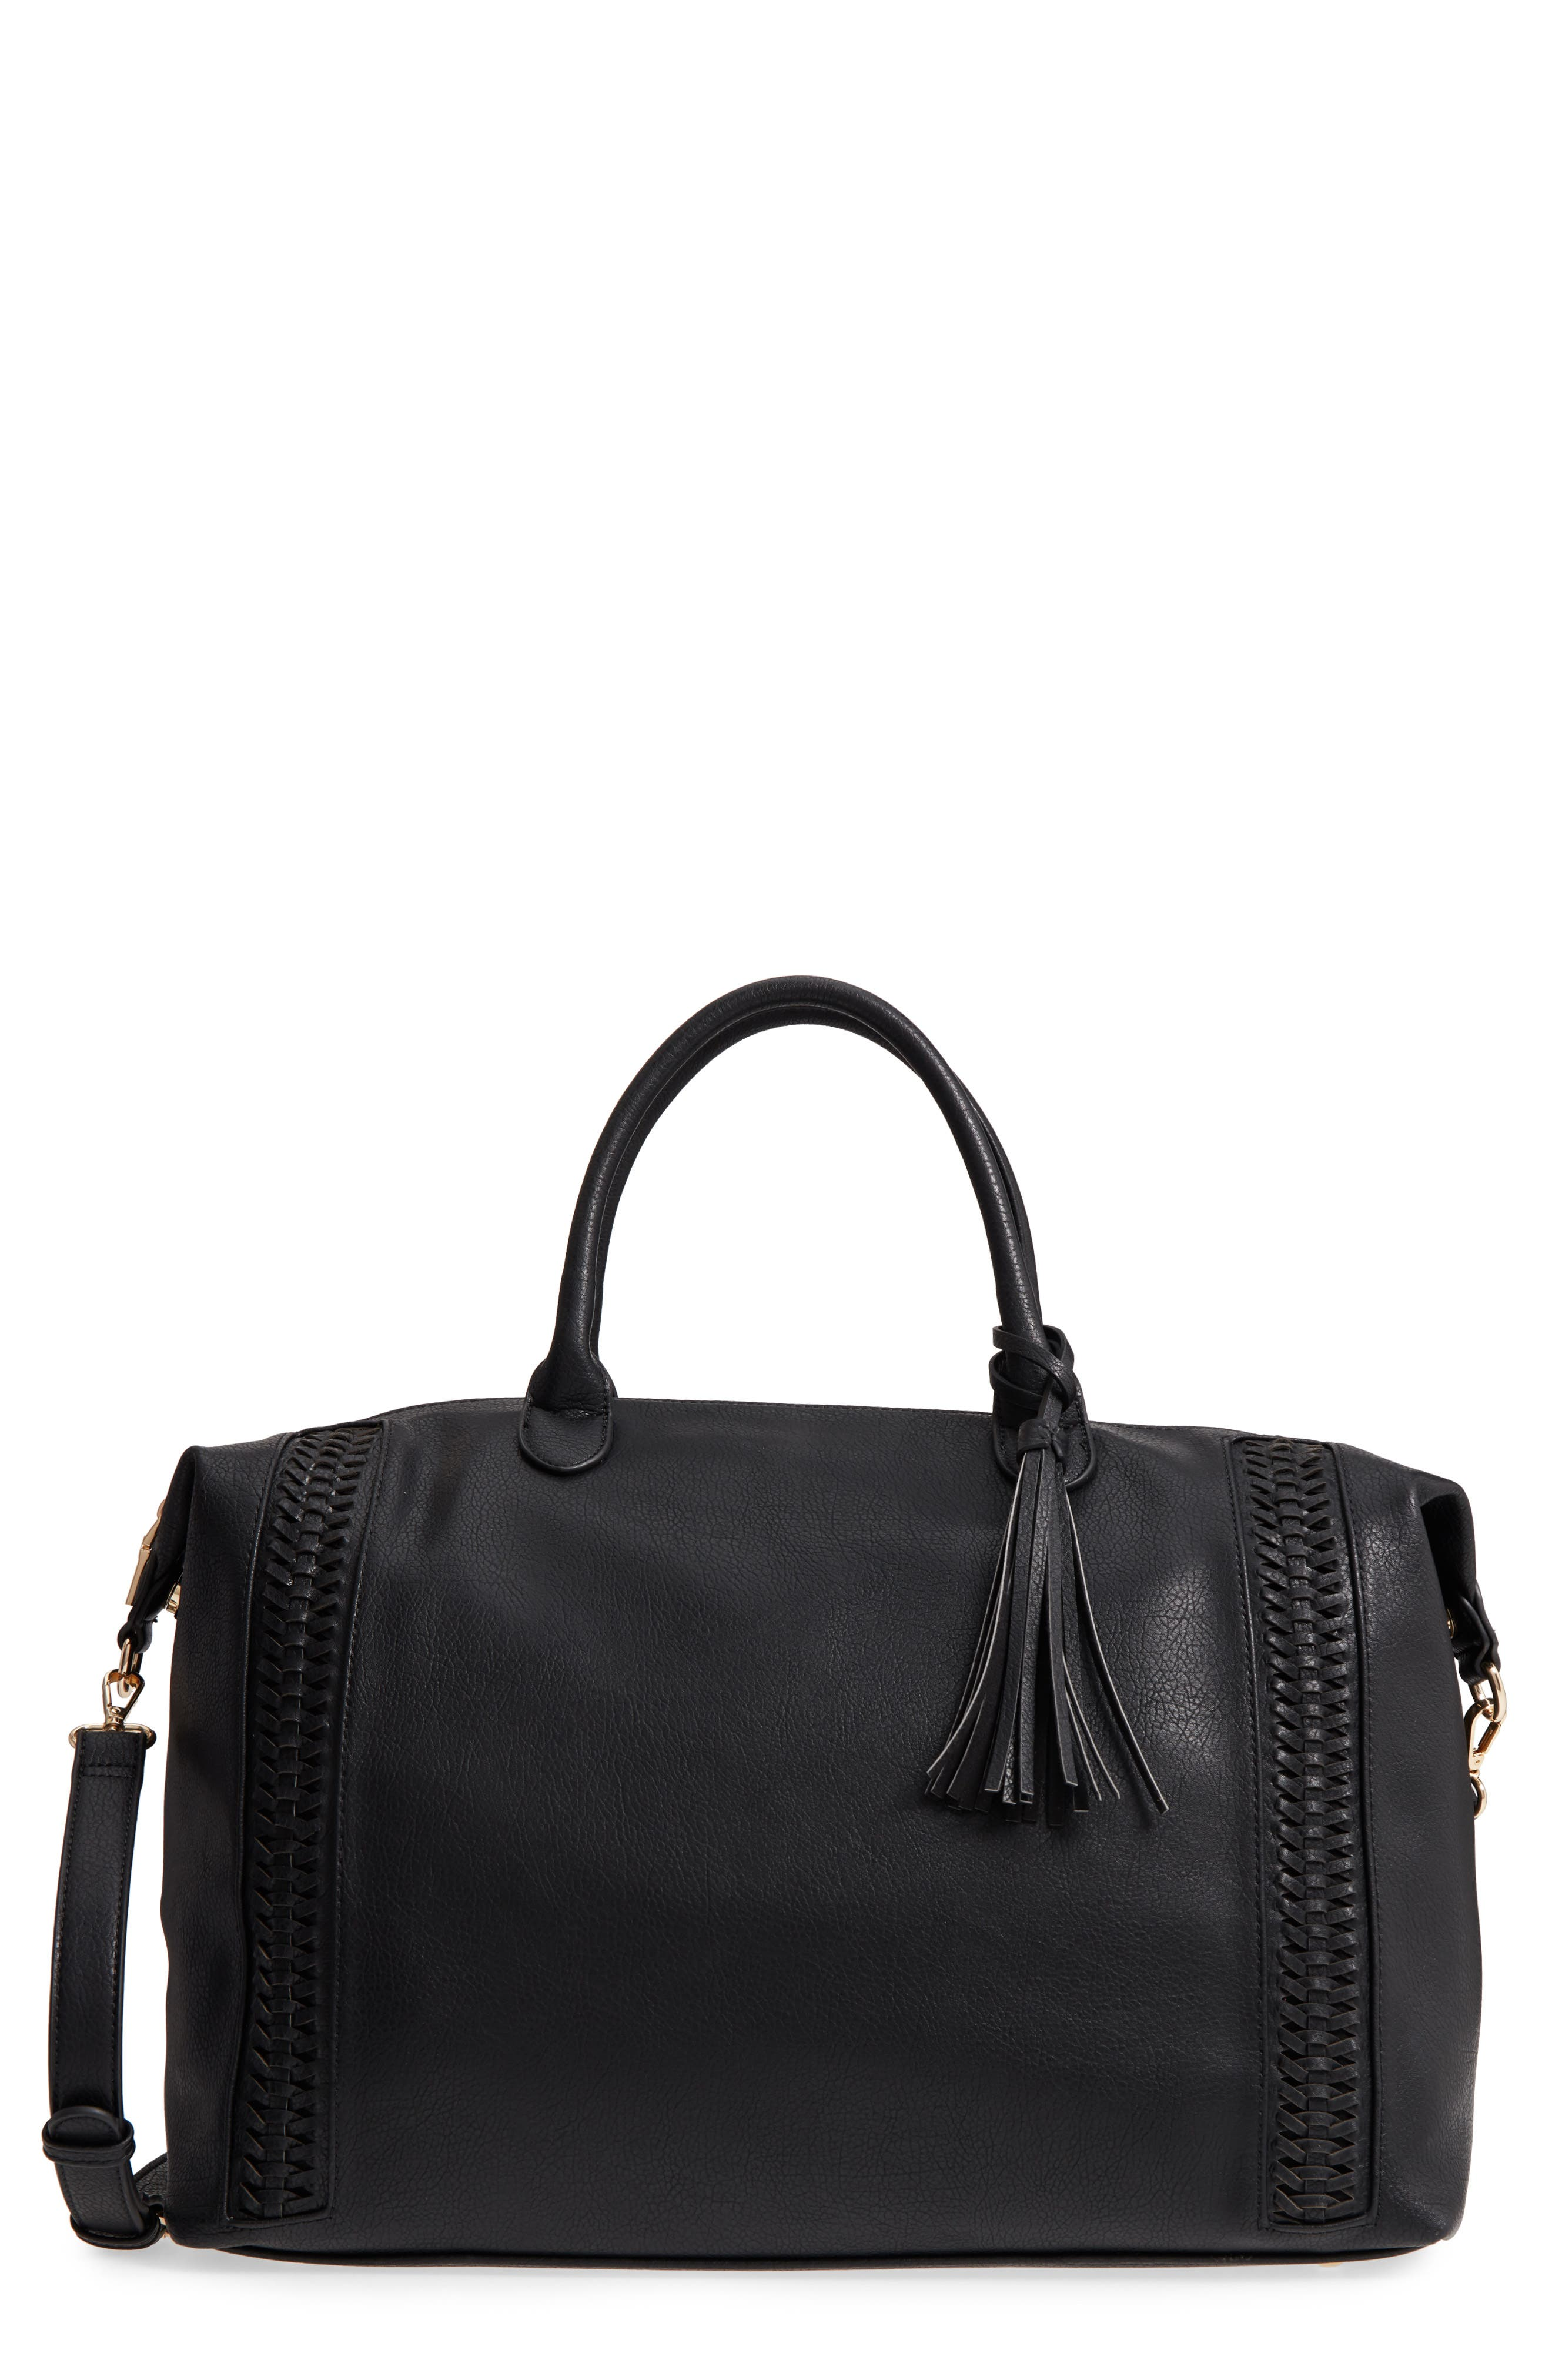 Tara Whipstitched Faux Leather Weekend Bag,                         Main,                         color, 001